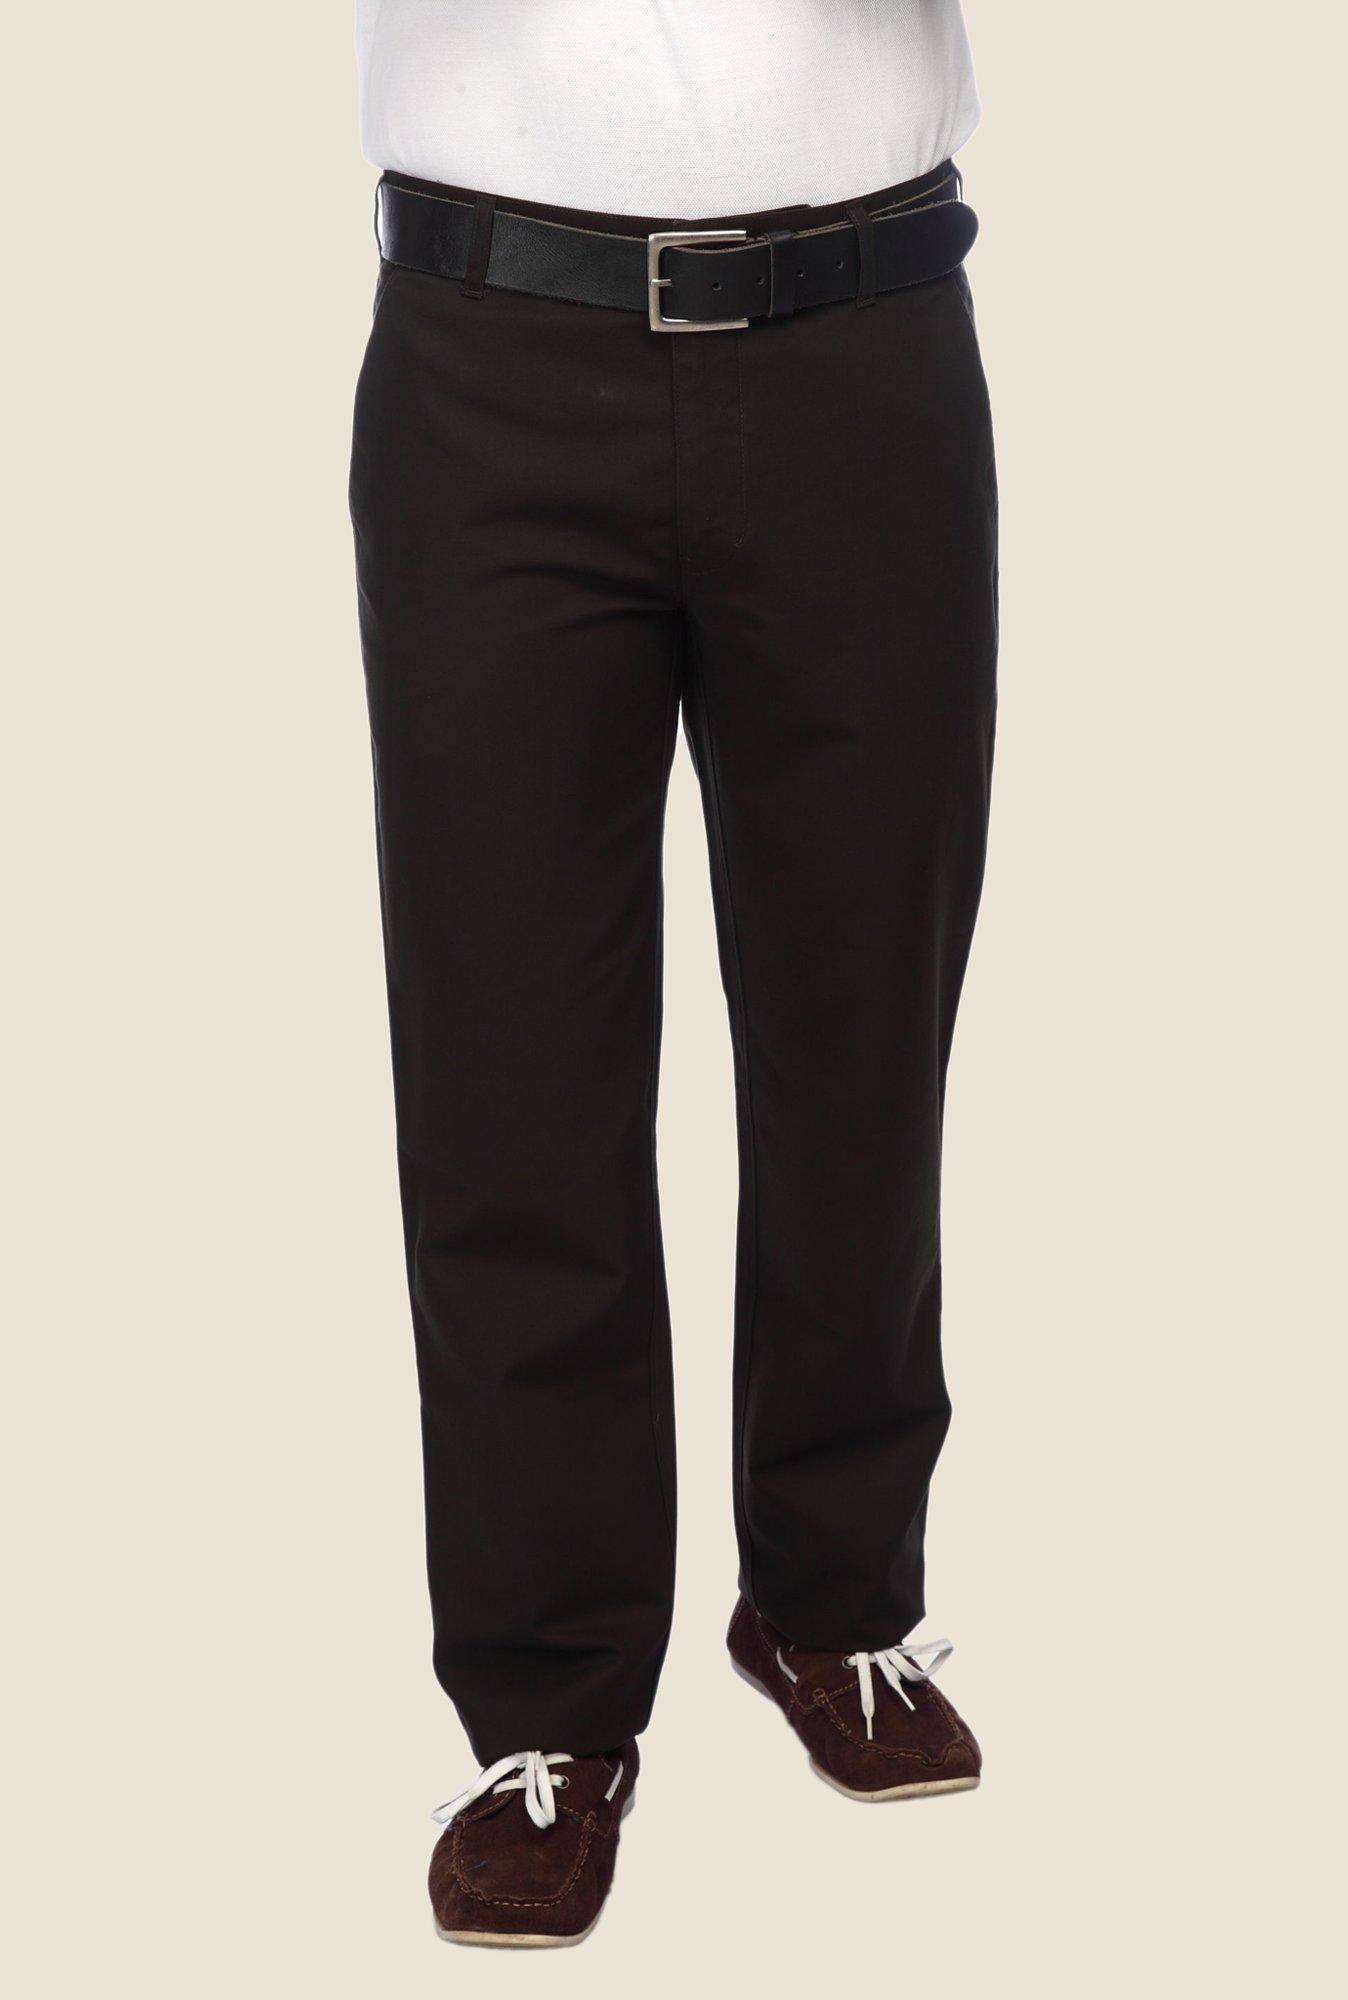 ColorPlus Brown Solid Trouser